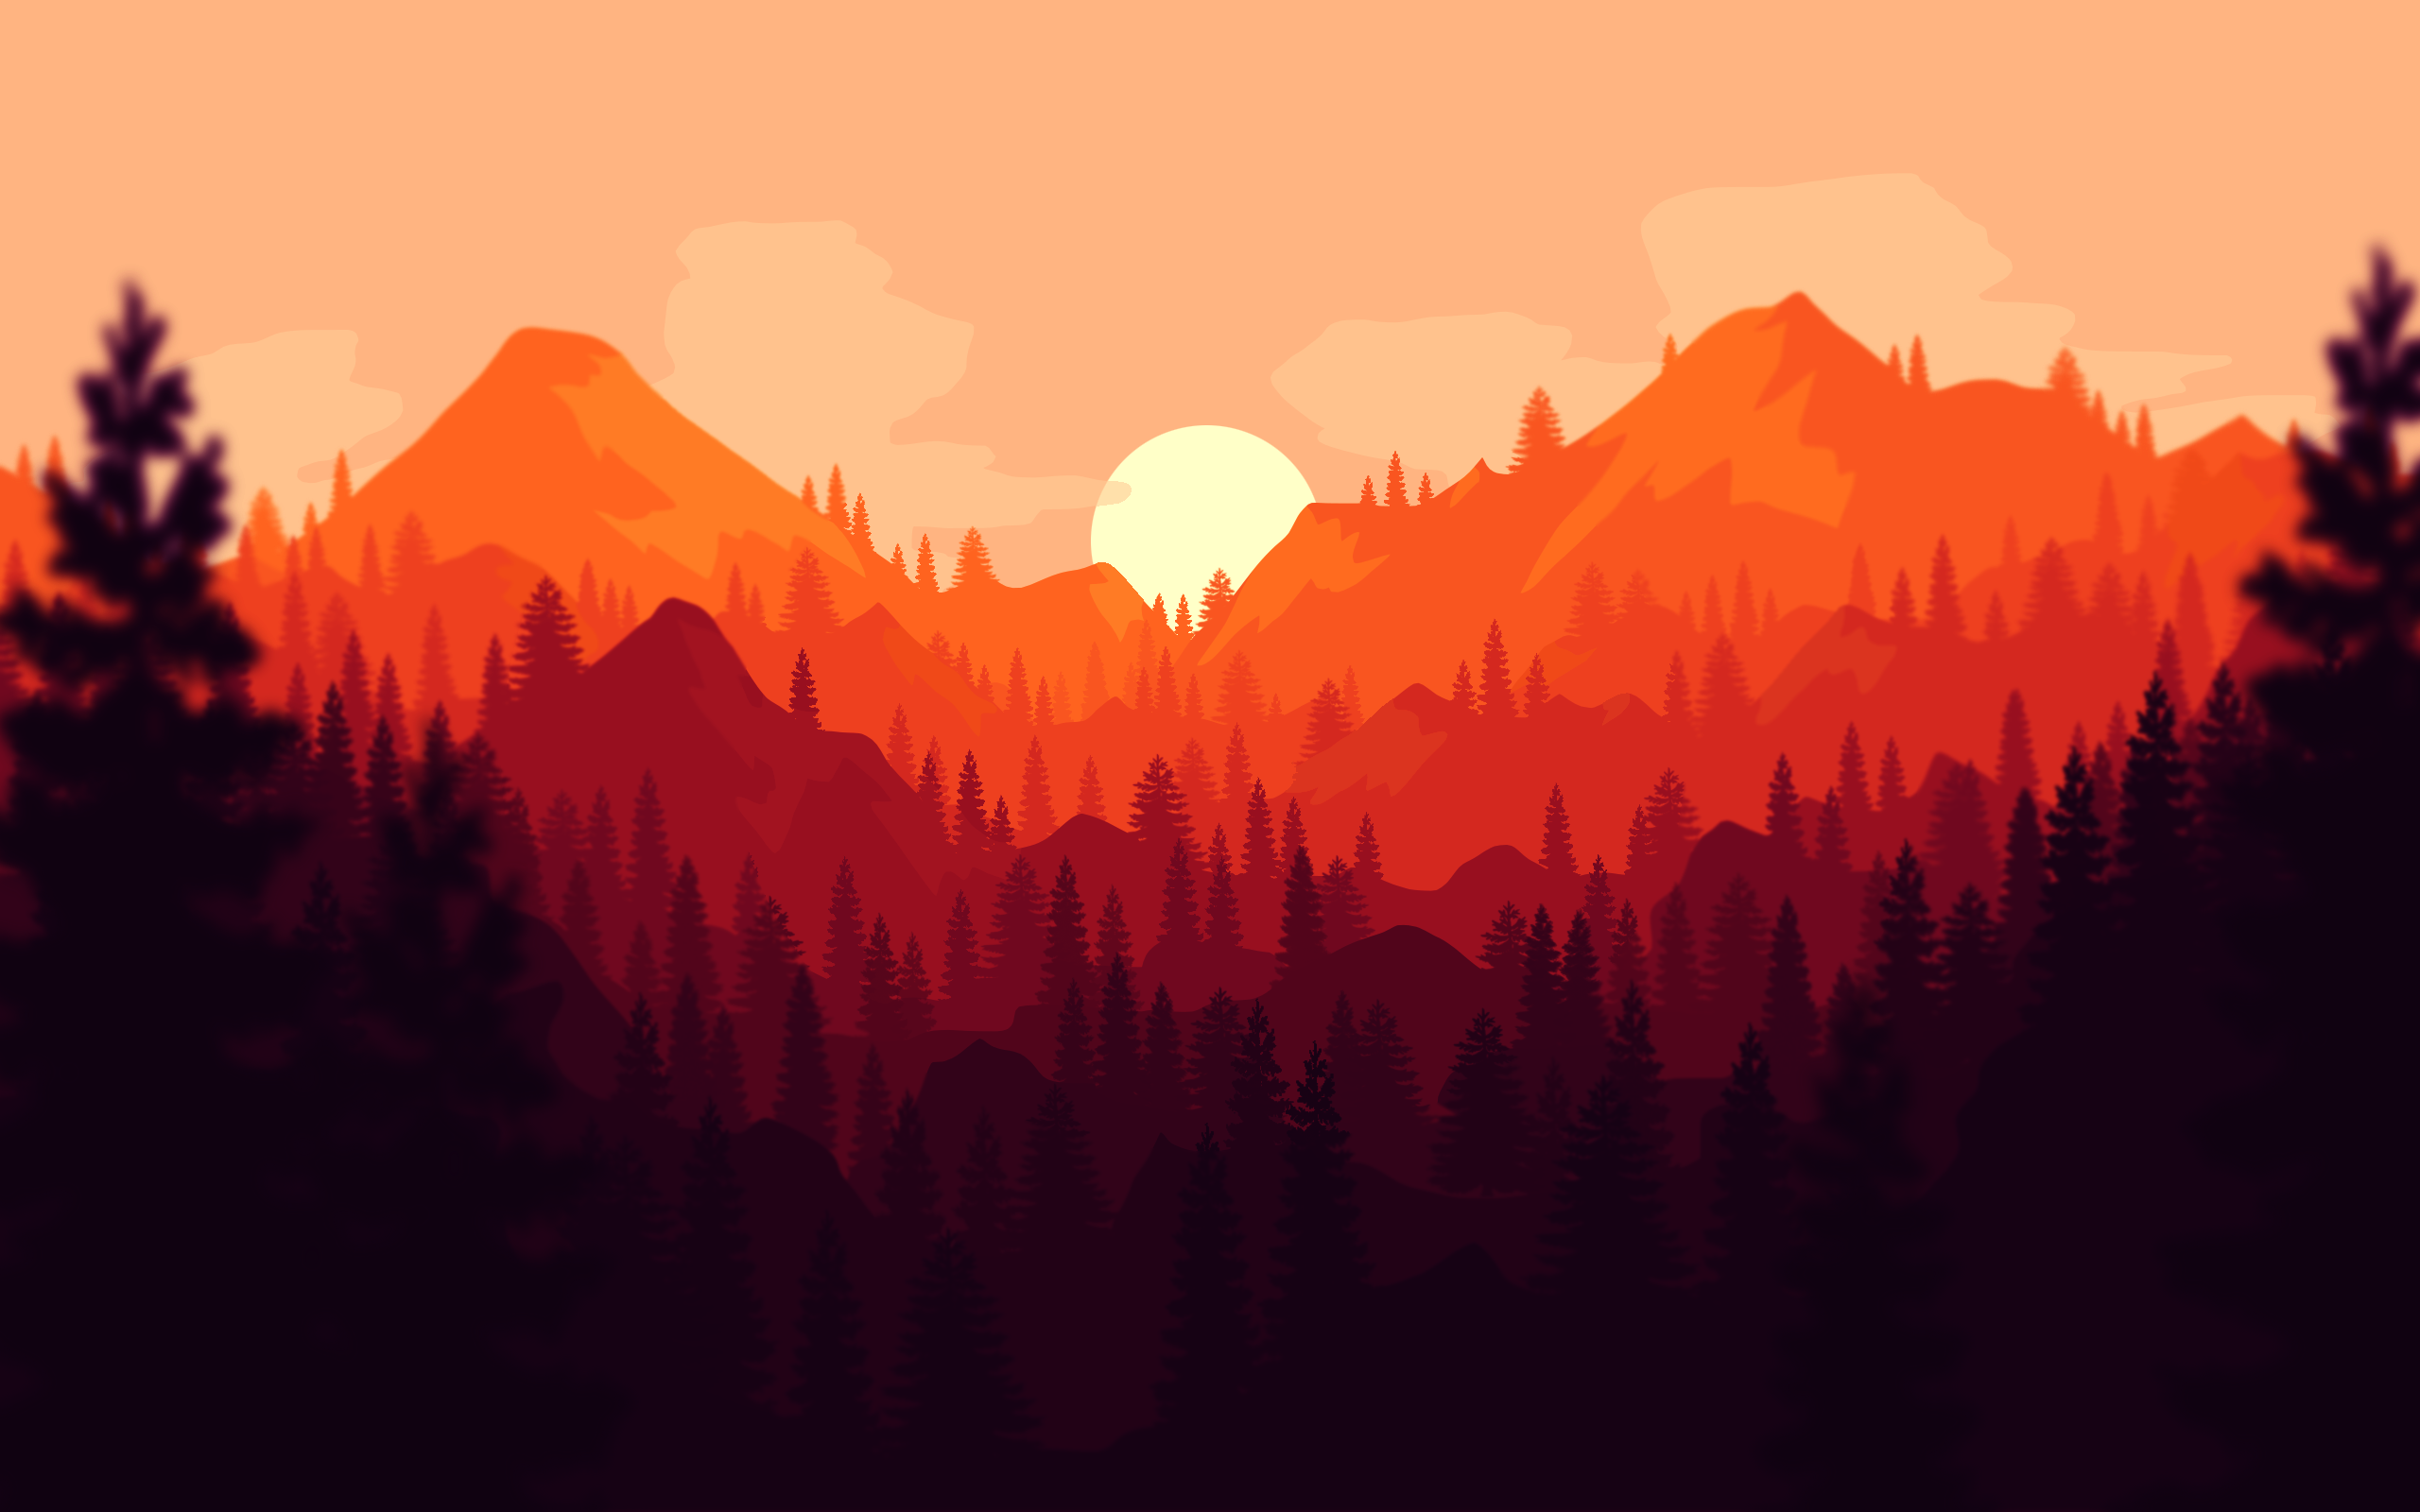 Clean Firewatch Styled Wallpaper wallpapers 2560x1600